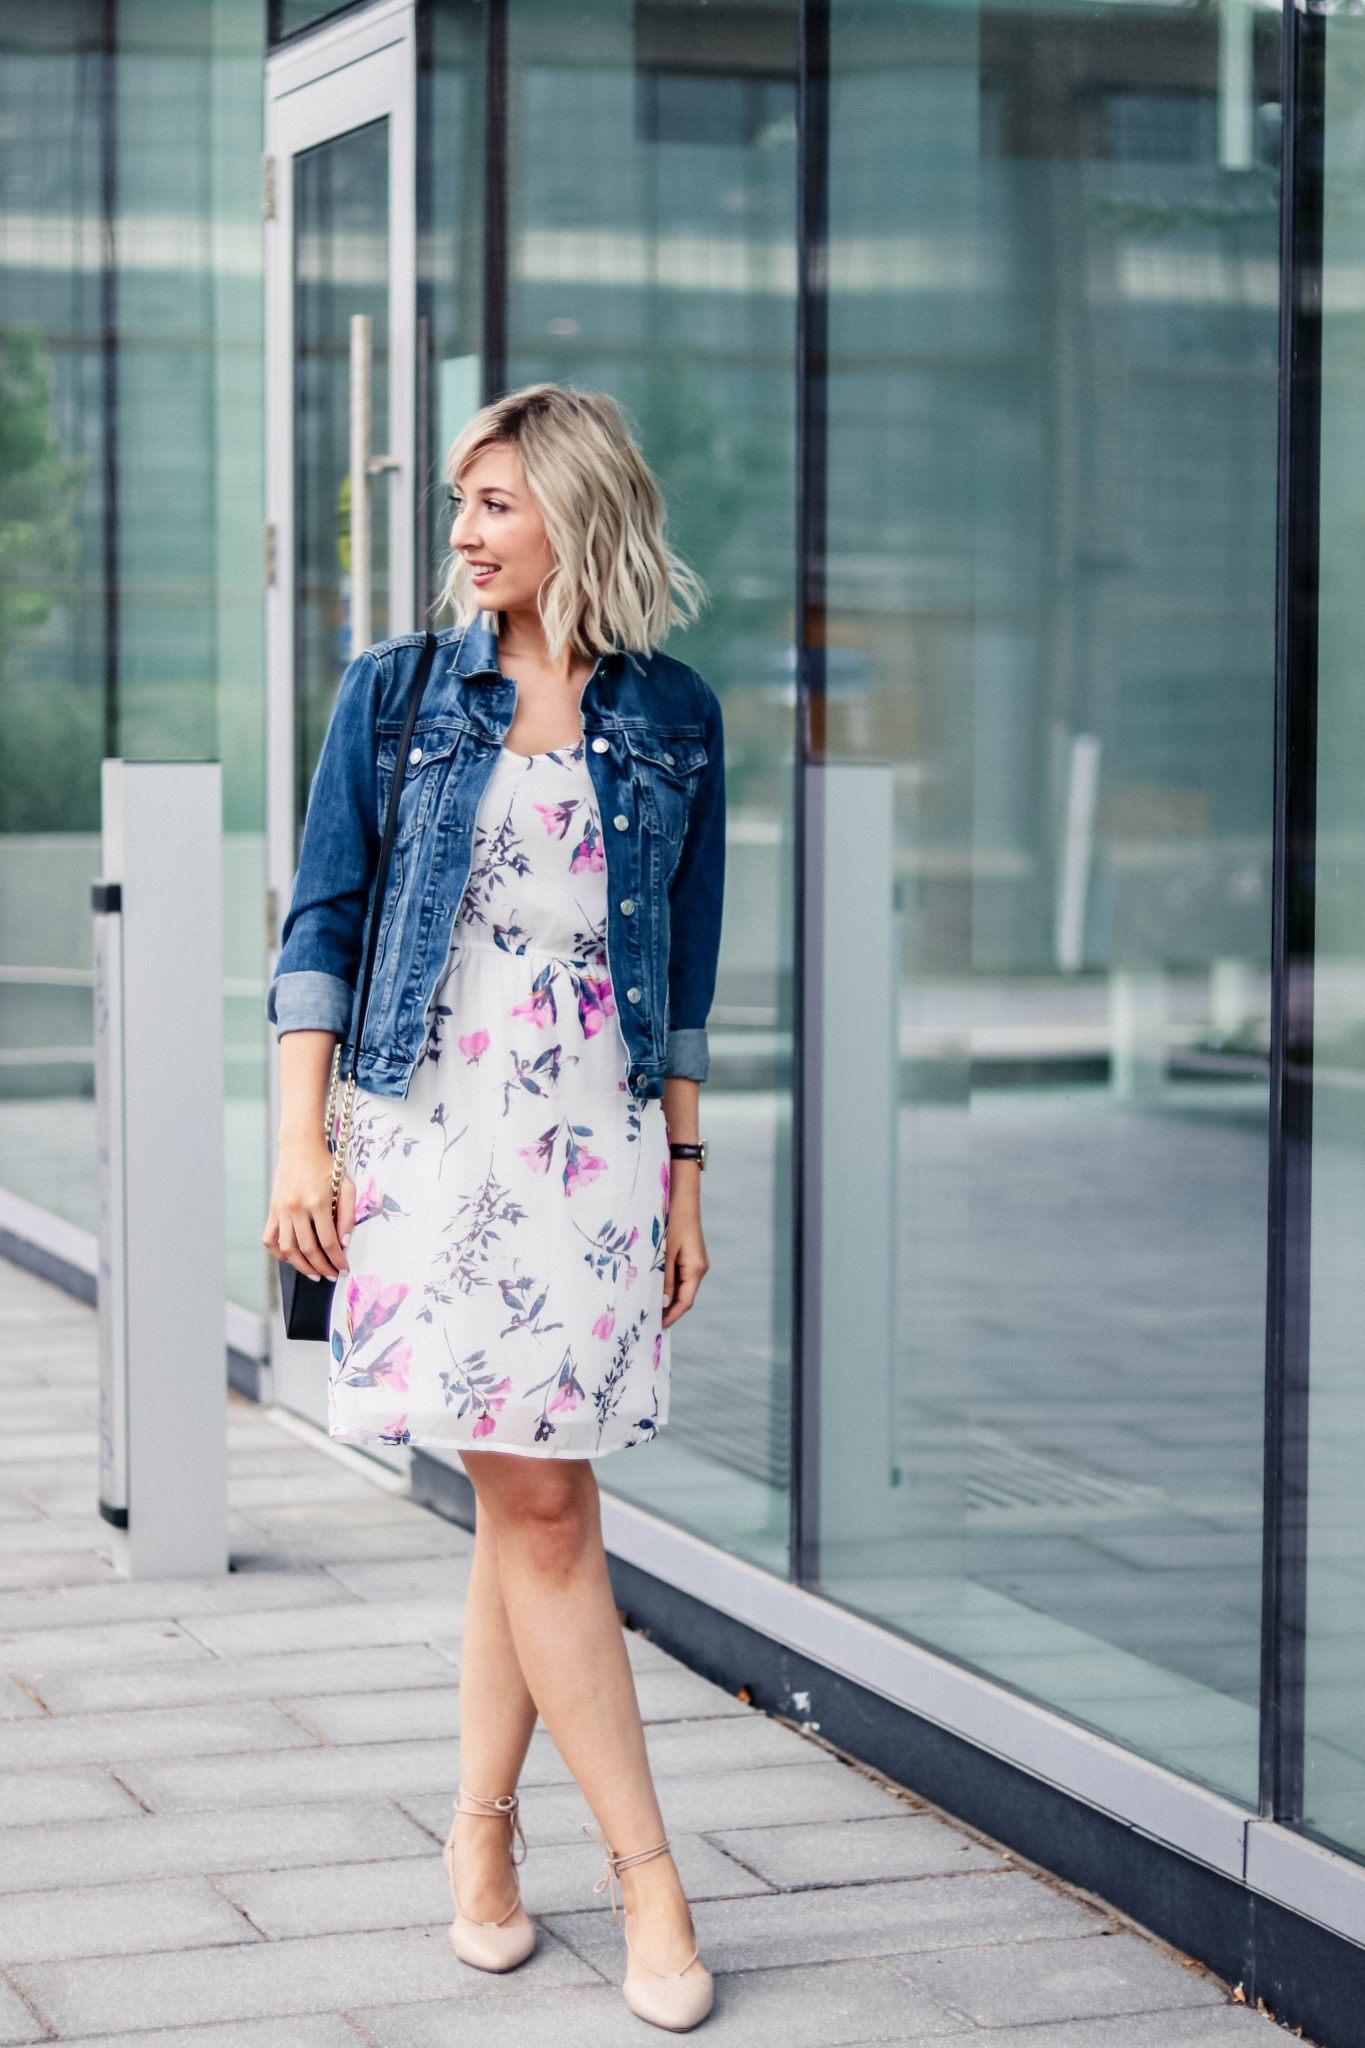 summer dress for fall transition style 2